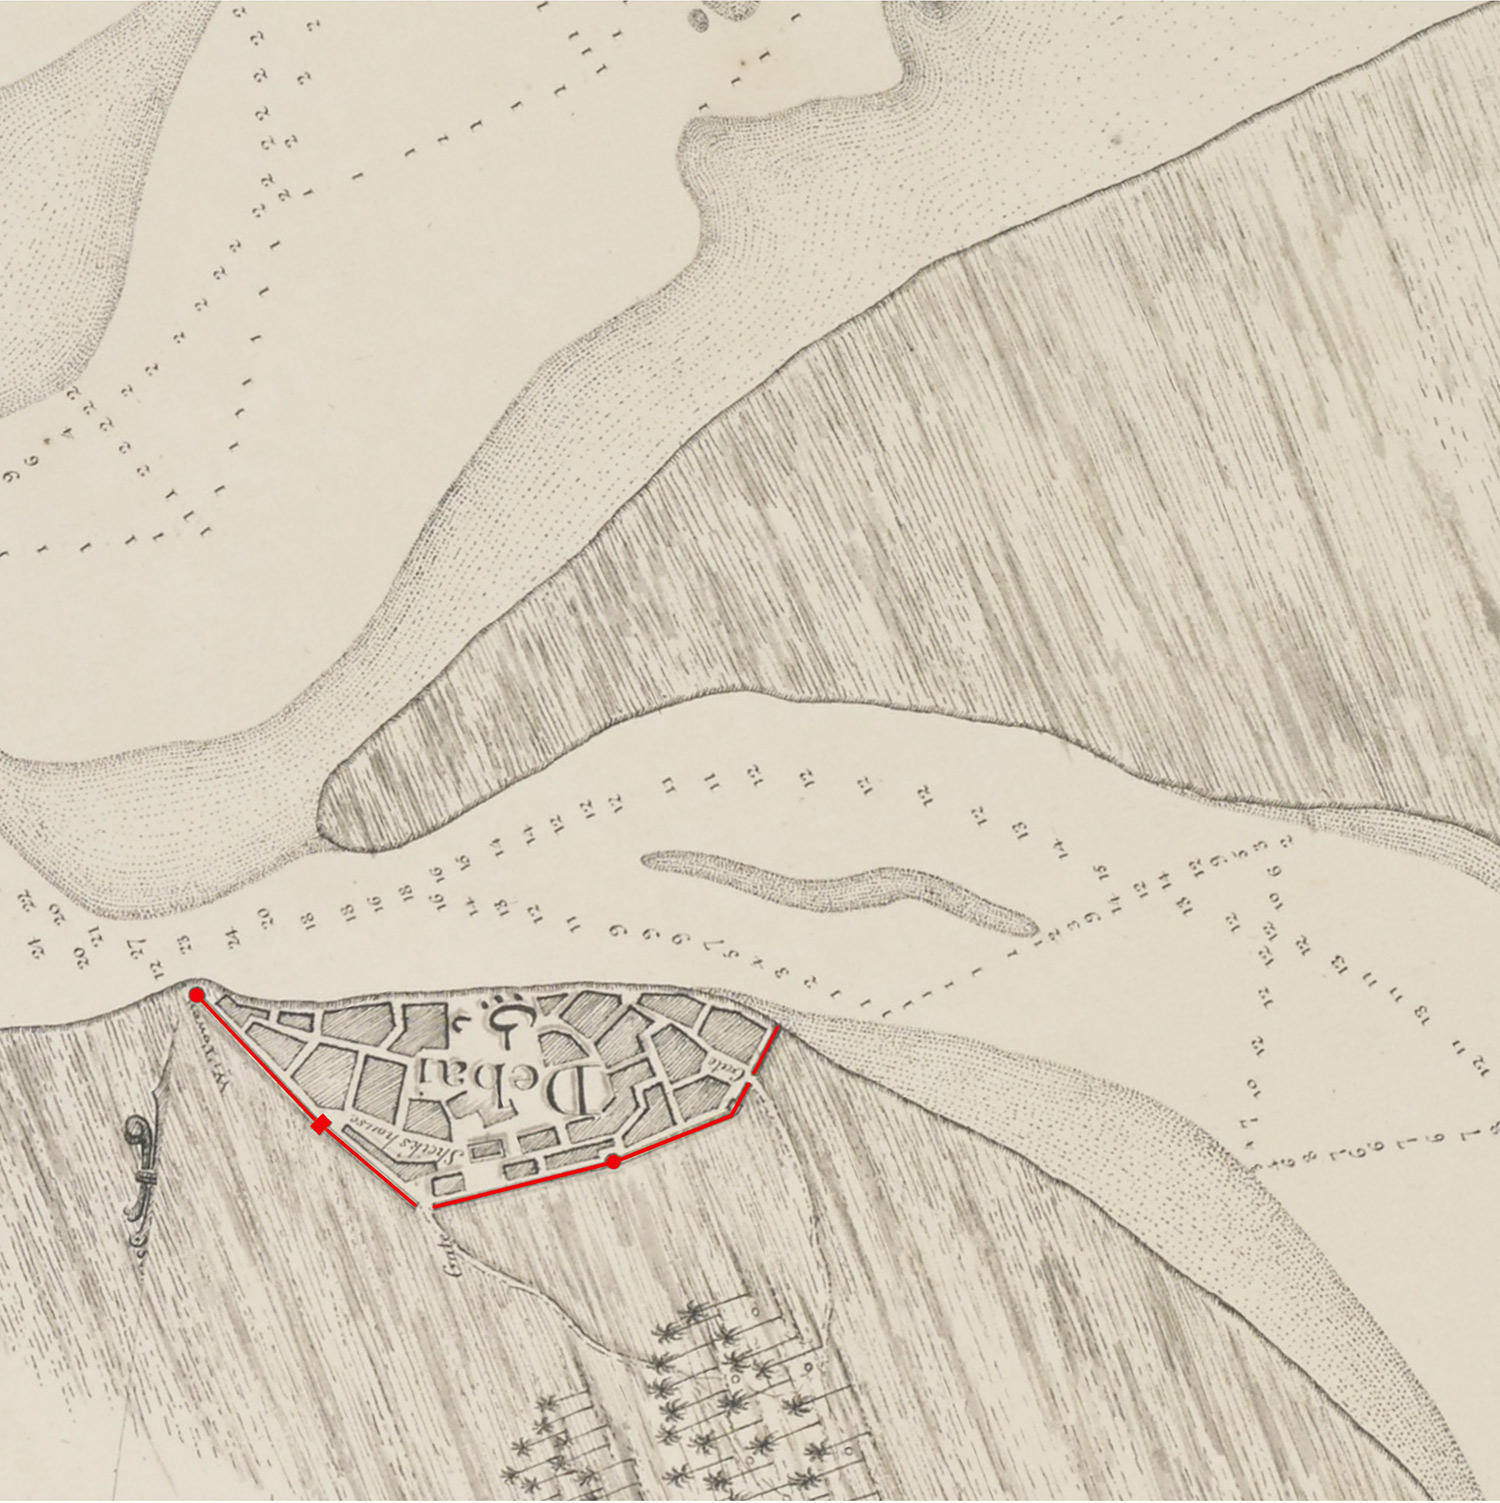 Map detail from 'Trigonometrical Plan of the Back-water of DEBAI' by Lieut. R. Cogan's map, 1822  Highlighted in Red is the historic Path of Boundary wall around 'DEBAI', Source: http://www.sheikhmohammed.com